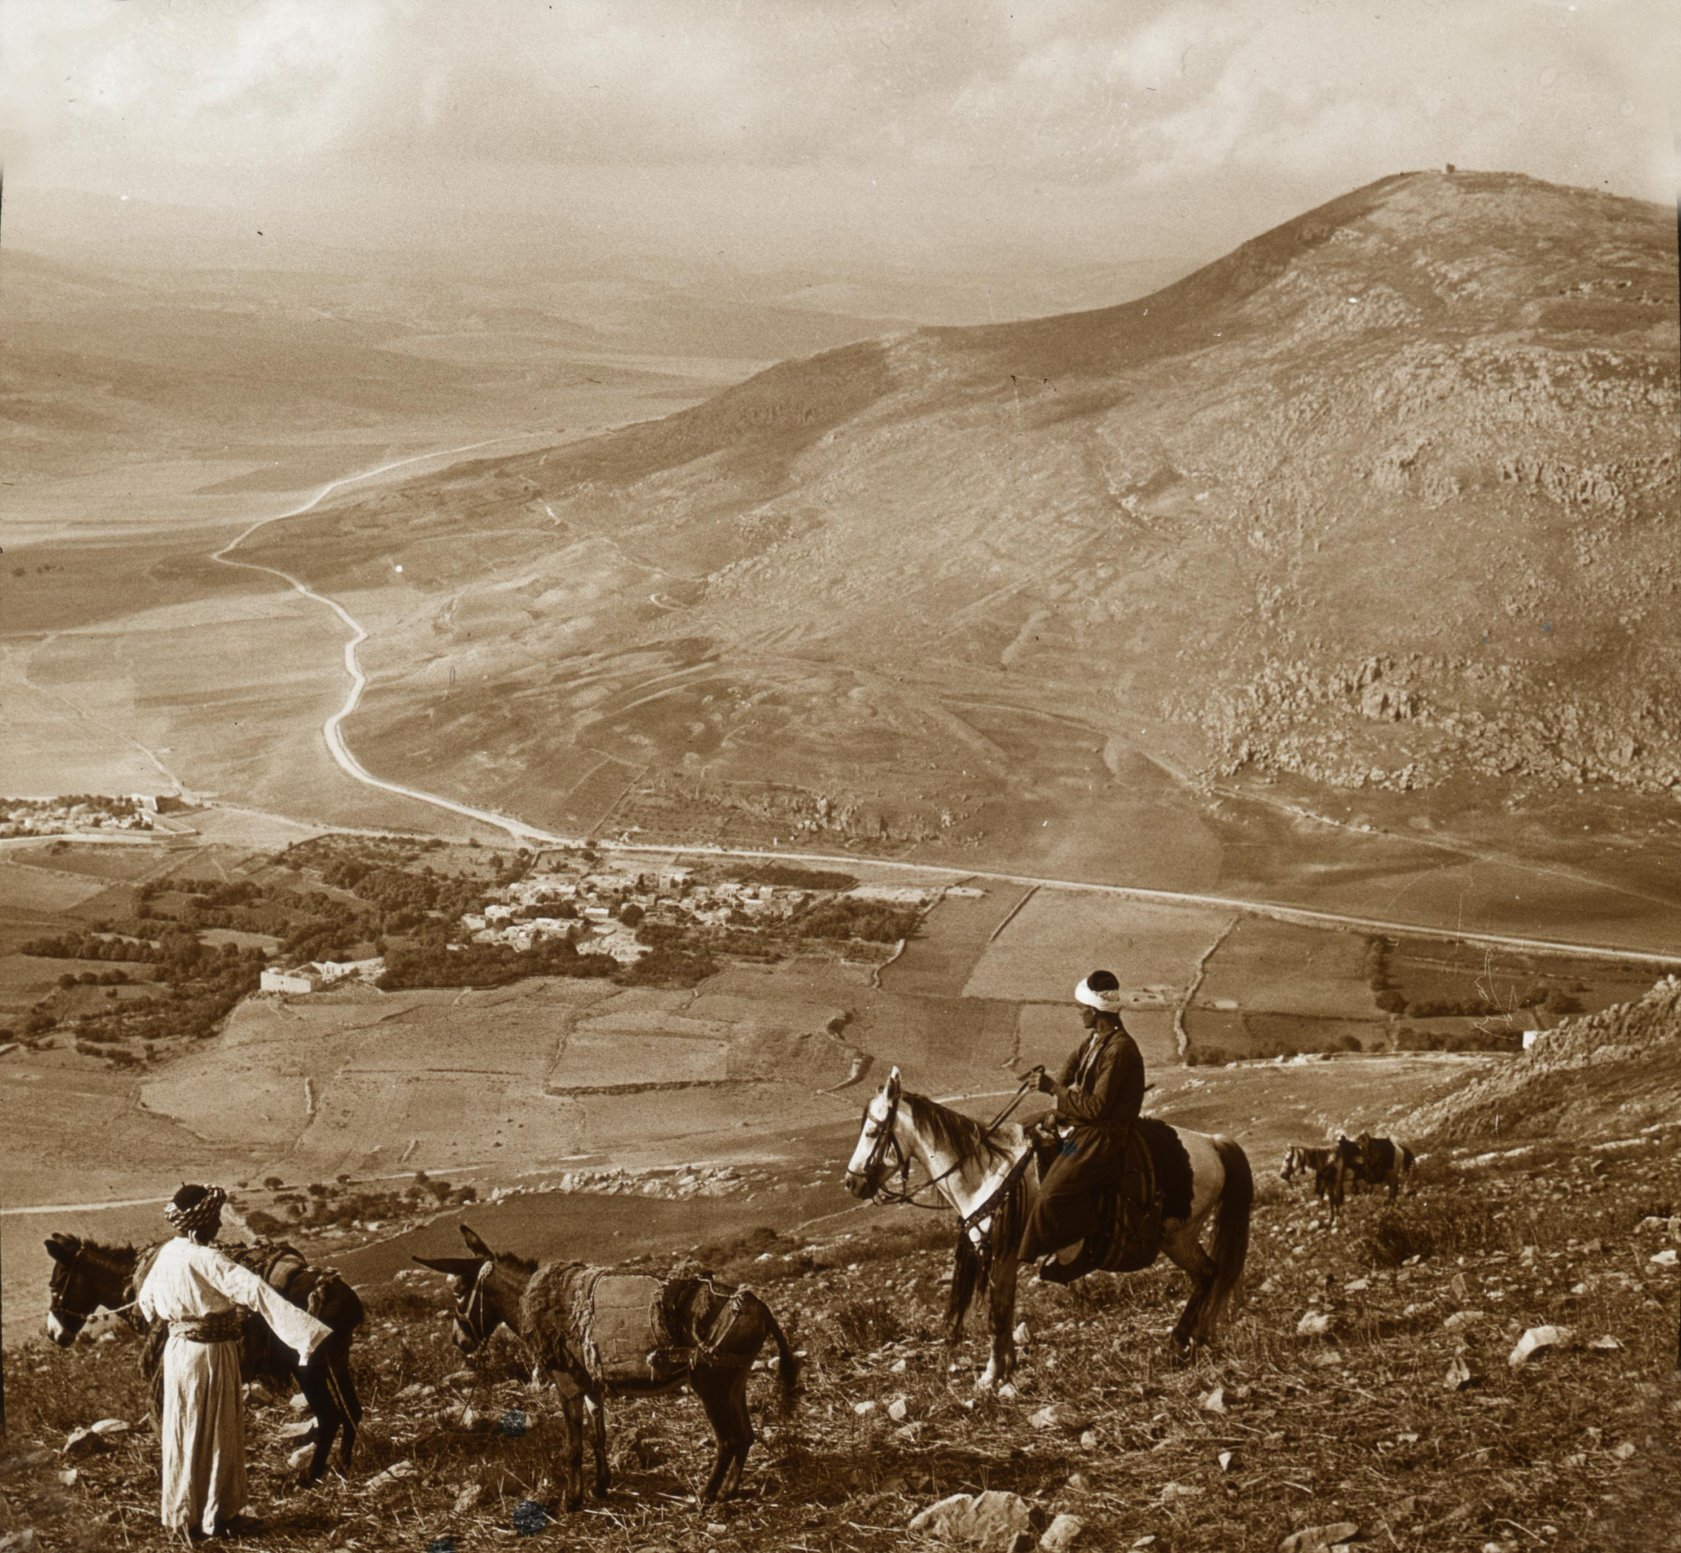 Nablus - نابلس : NABLUS - Late 19th, early 20th c. 33 - From Mt Ebal south, over Jacob's Well and Joseph's Tomb, to Mt Gerizim